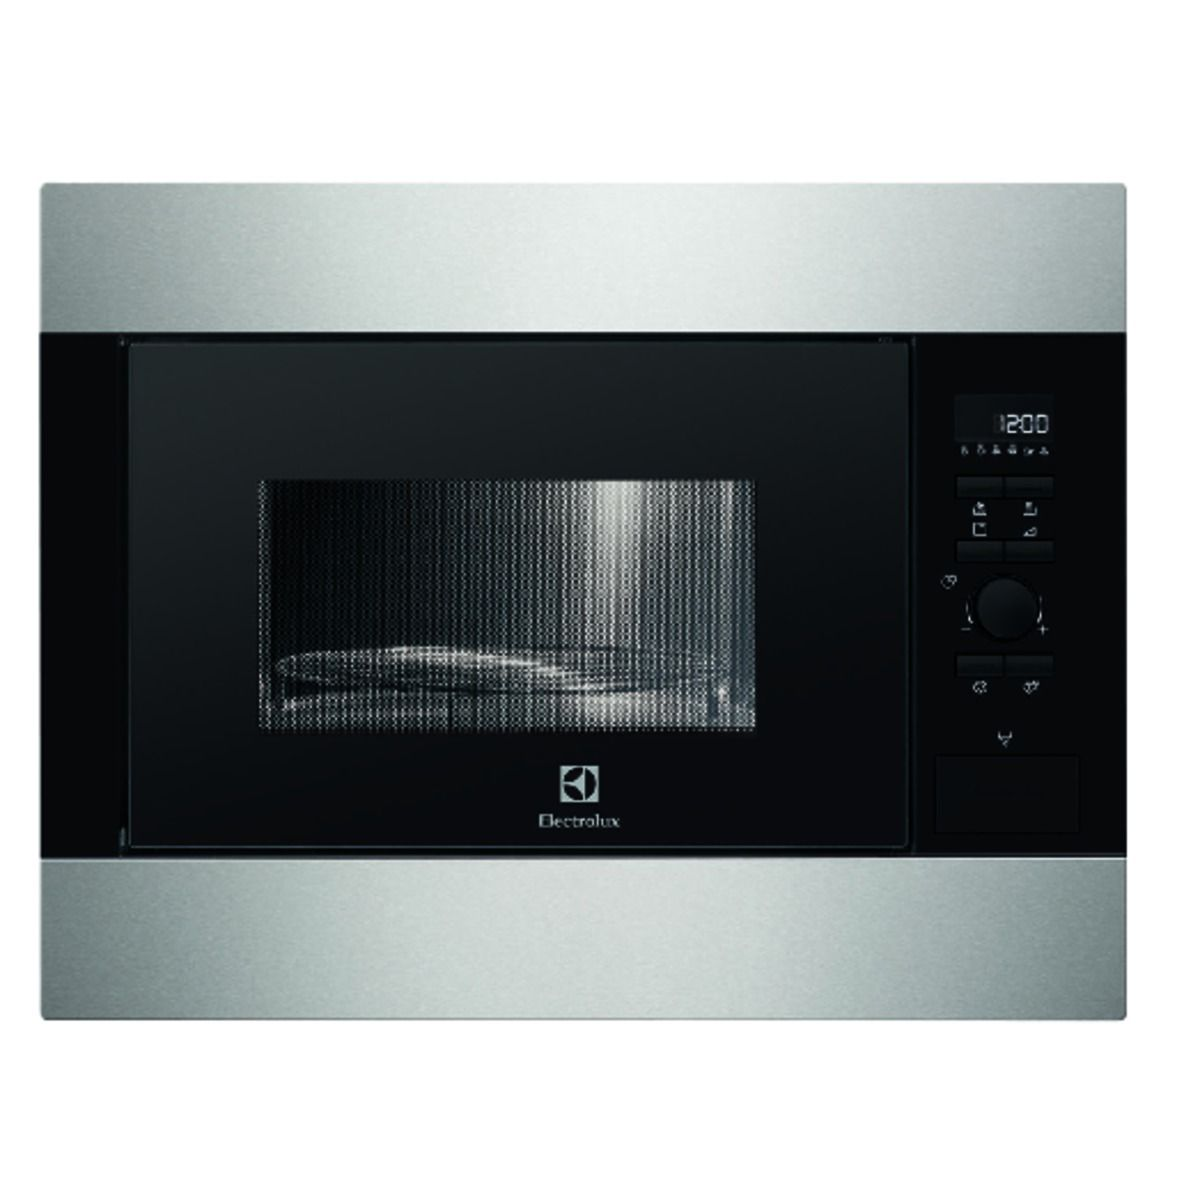 electrolux built in oven. electrolux ems26204ox fully built-in 26 litre microwave oven with grill stainless steel 900w | wickes.co.uk built in